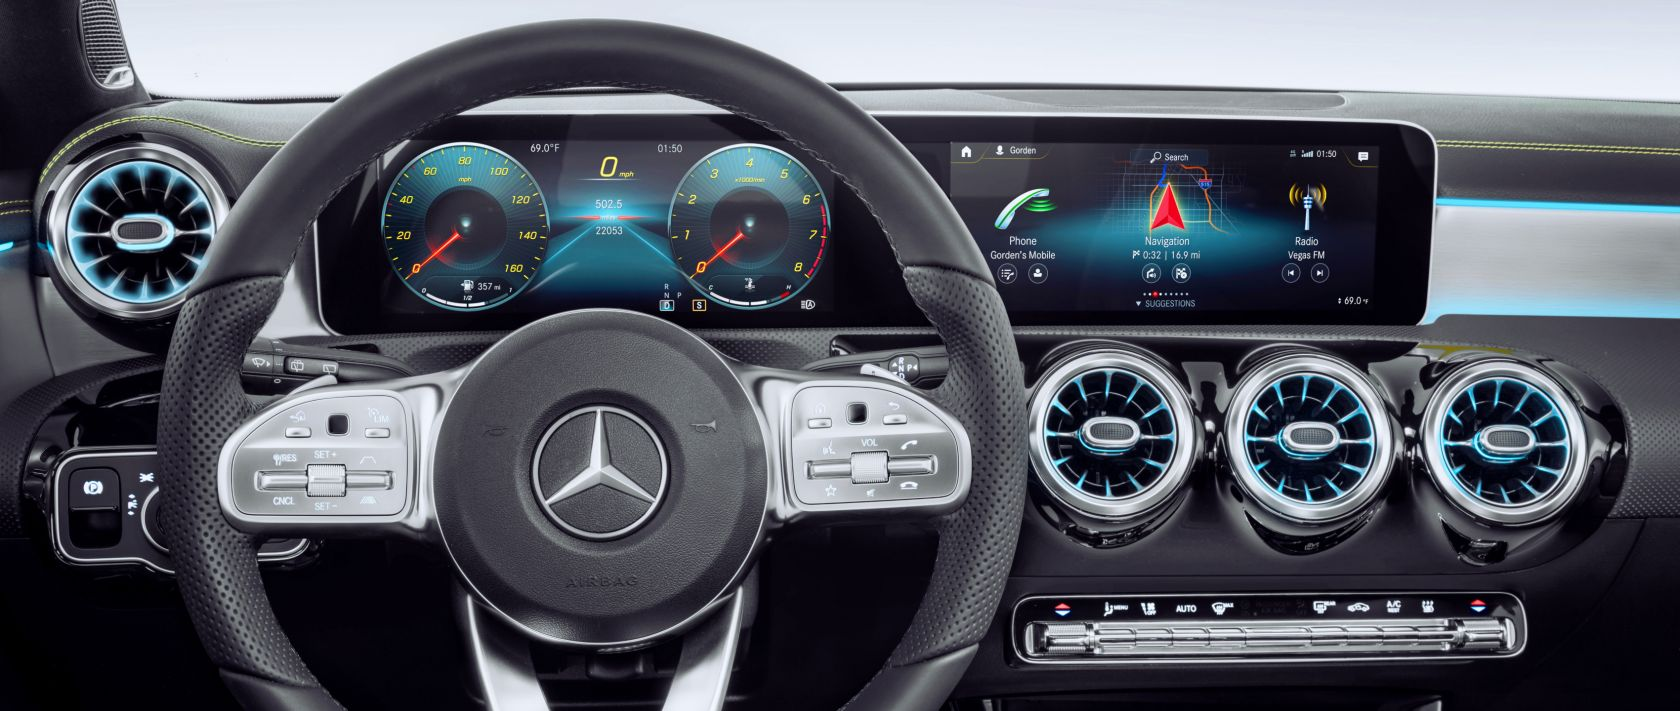 The widescreen displays of the Mercedes-Benz A-Class (W 177) allow for full personialisation.